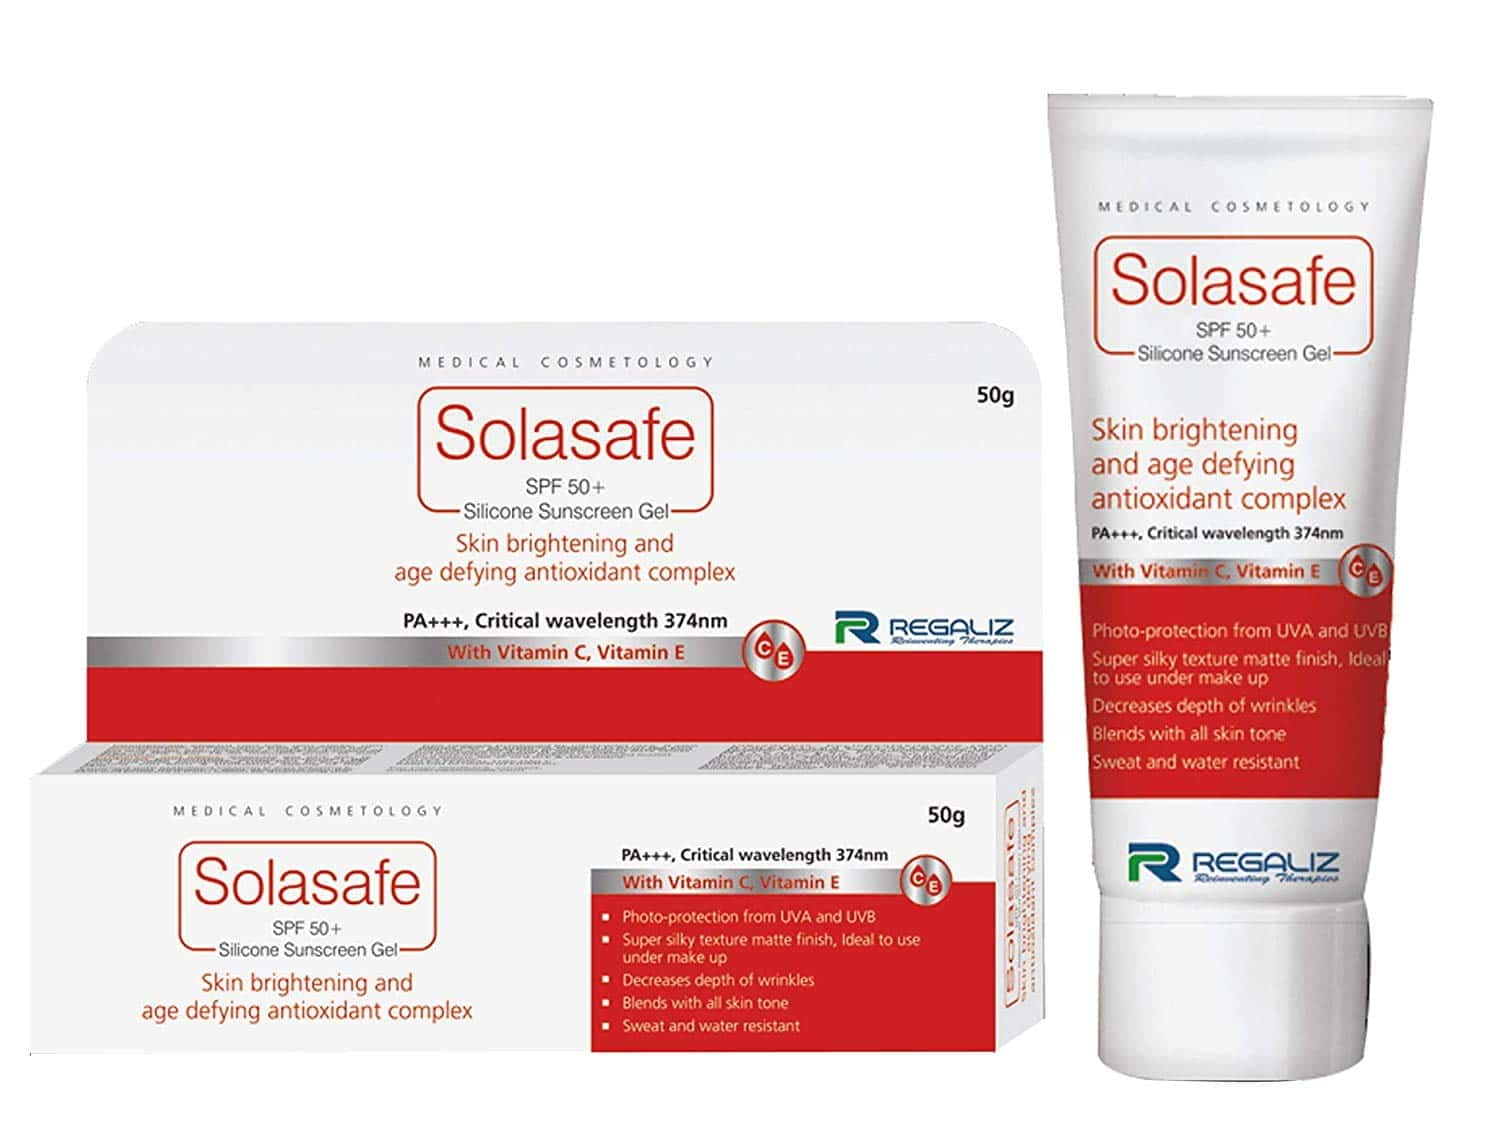 10 Best Sunscreens of 2021 - According to Dermatologists 3